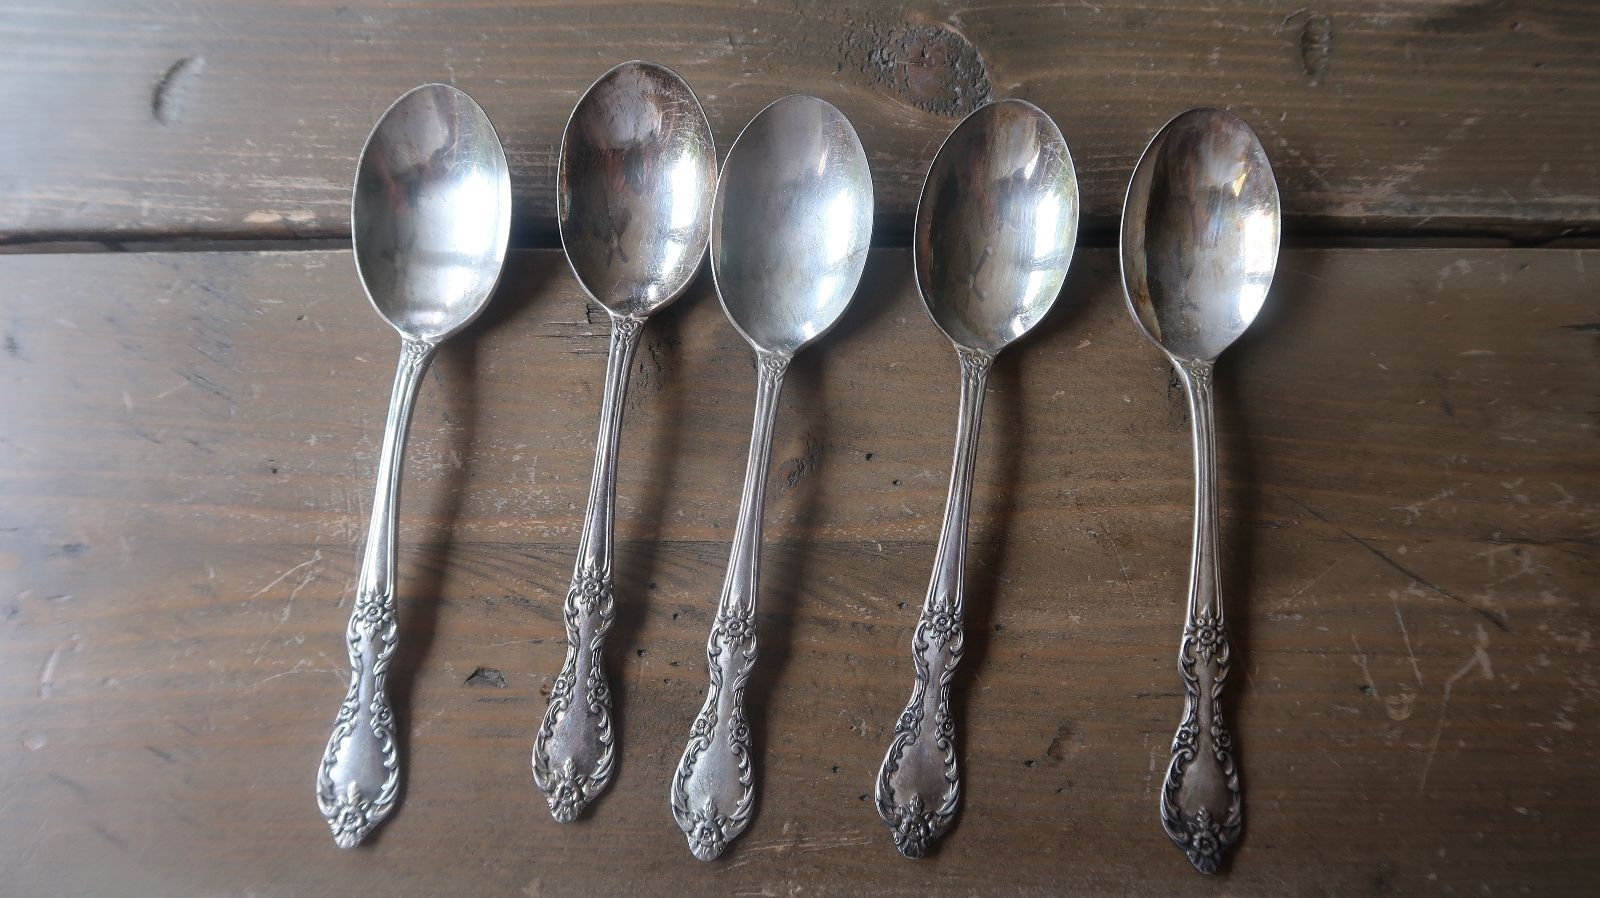 Primary image for Vintage Silverplate Rogers 1959 Grand Elegance Teaspoon 6 inches Set of 5